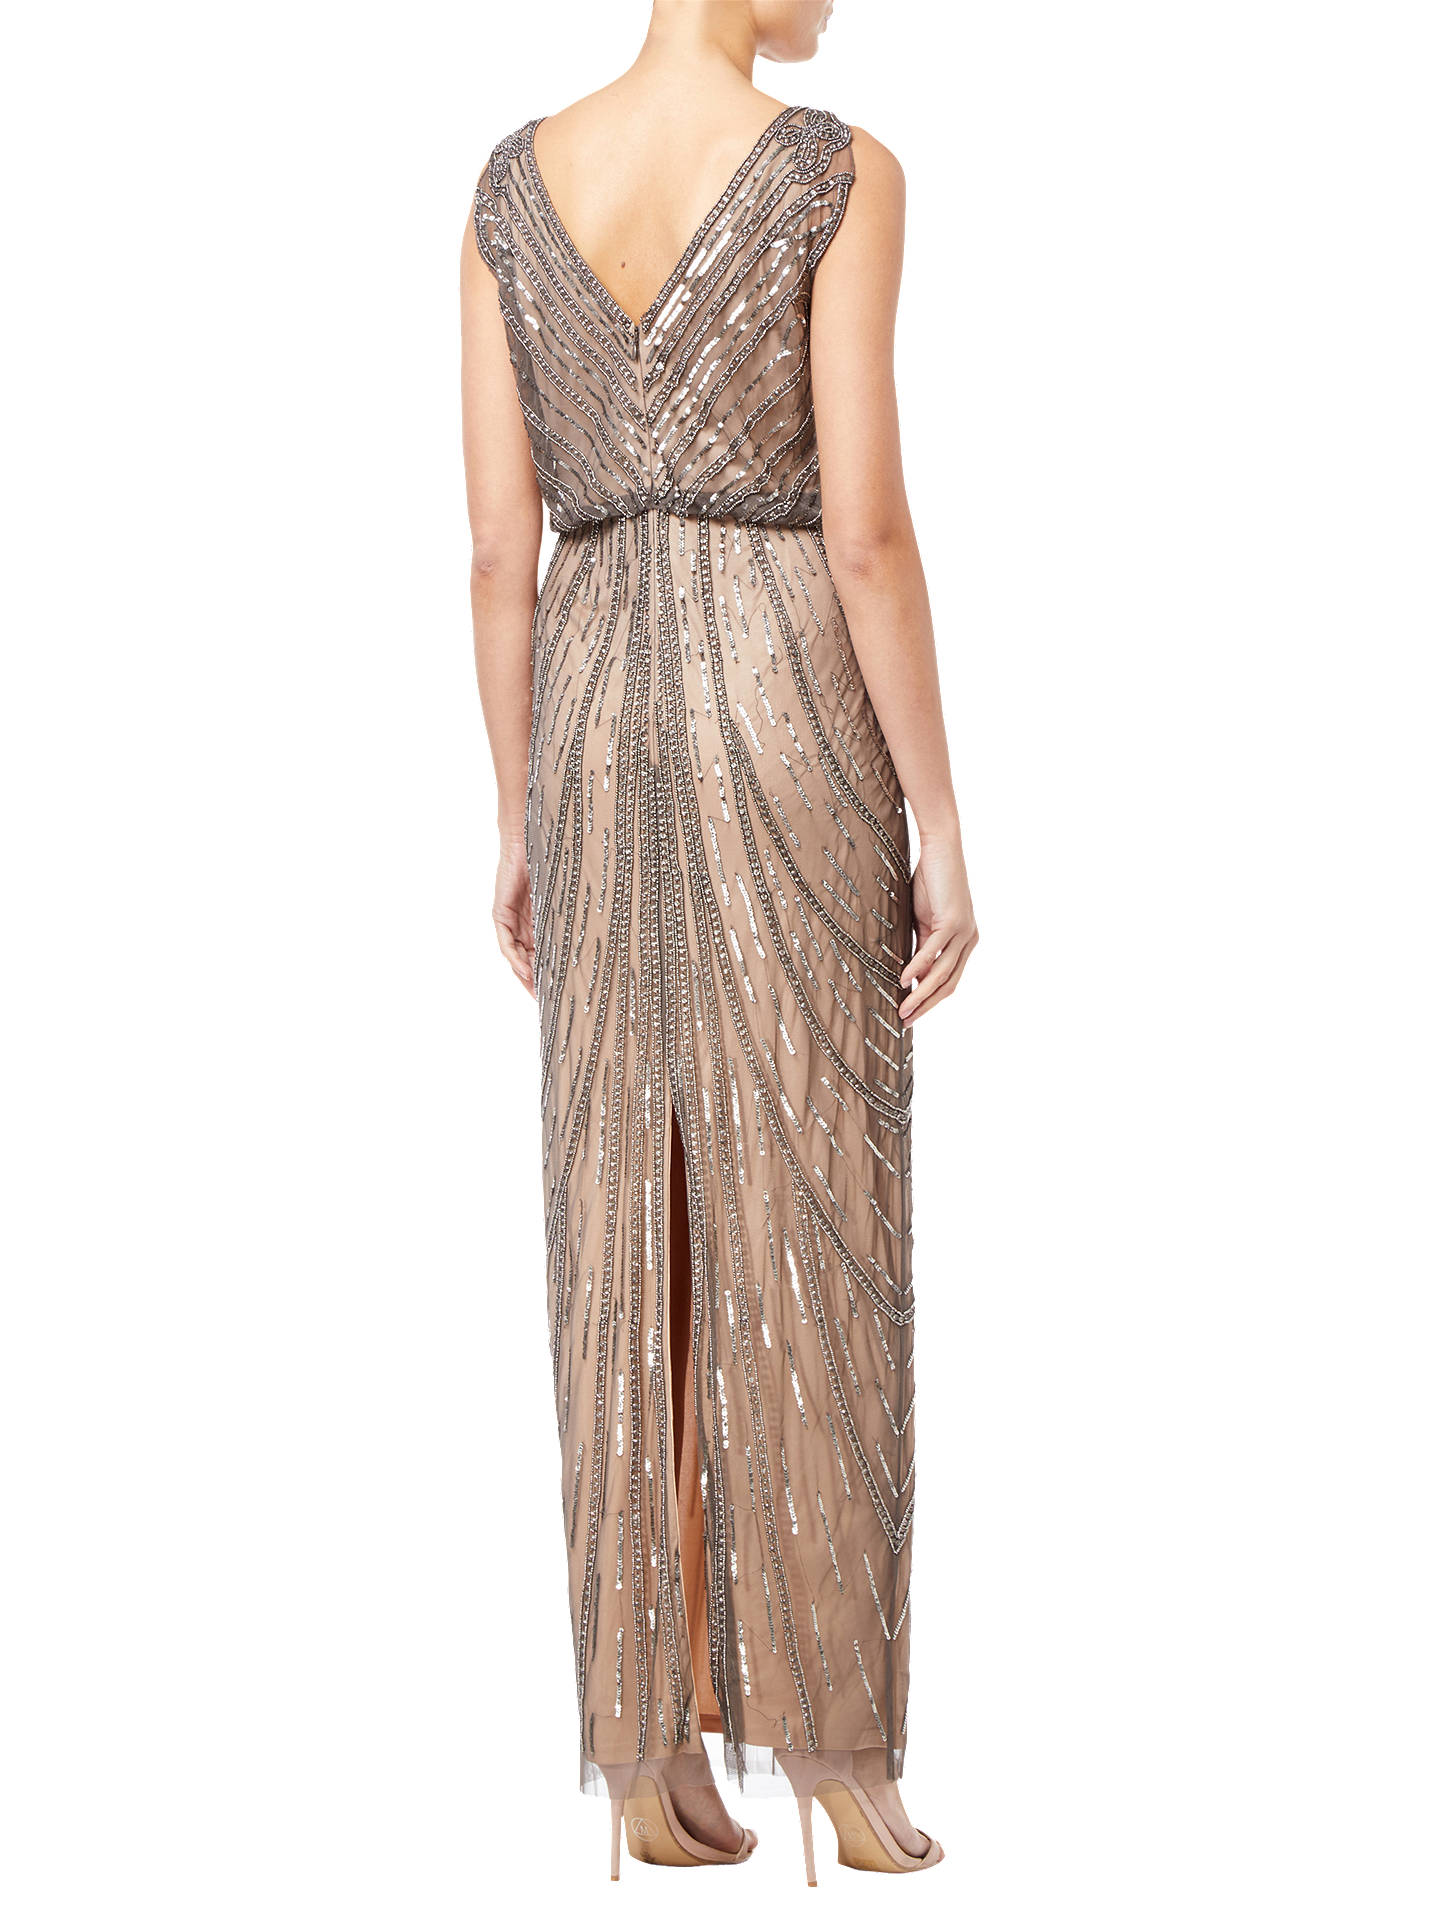 BuyAdrianna Papell Beaded Long Dress, Natural, 10 Online at johnlewis.com